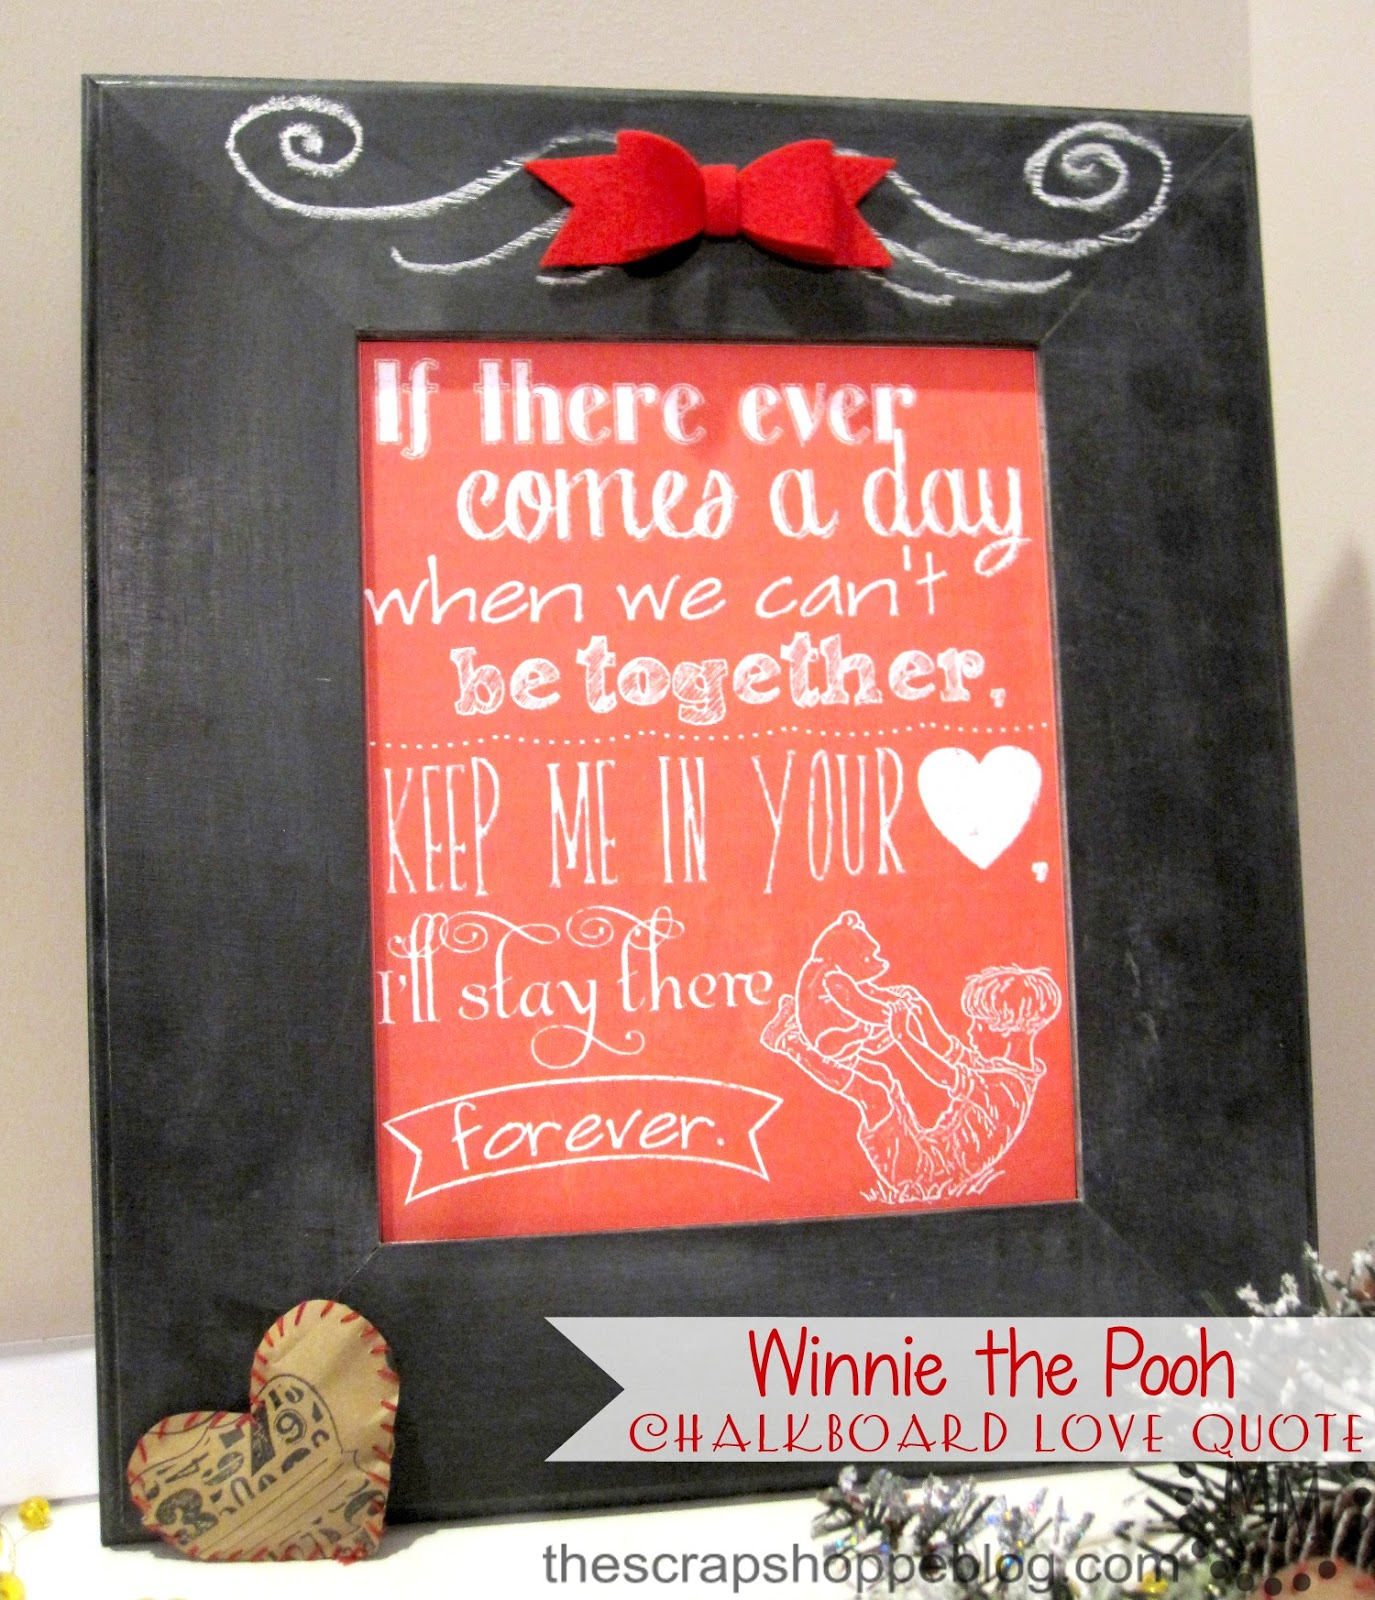 Pooh Love Quotes Winnie The Pooh Chalkboard Love Quote  The Scrap Shoppe